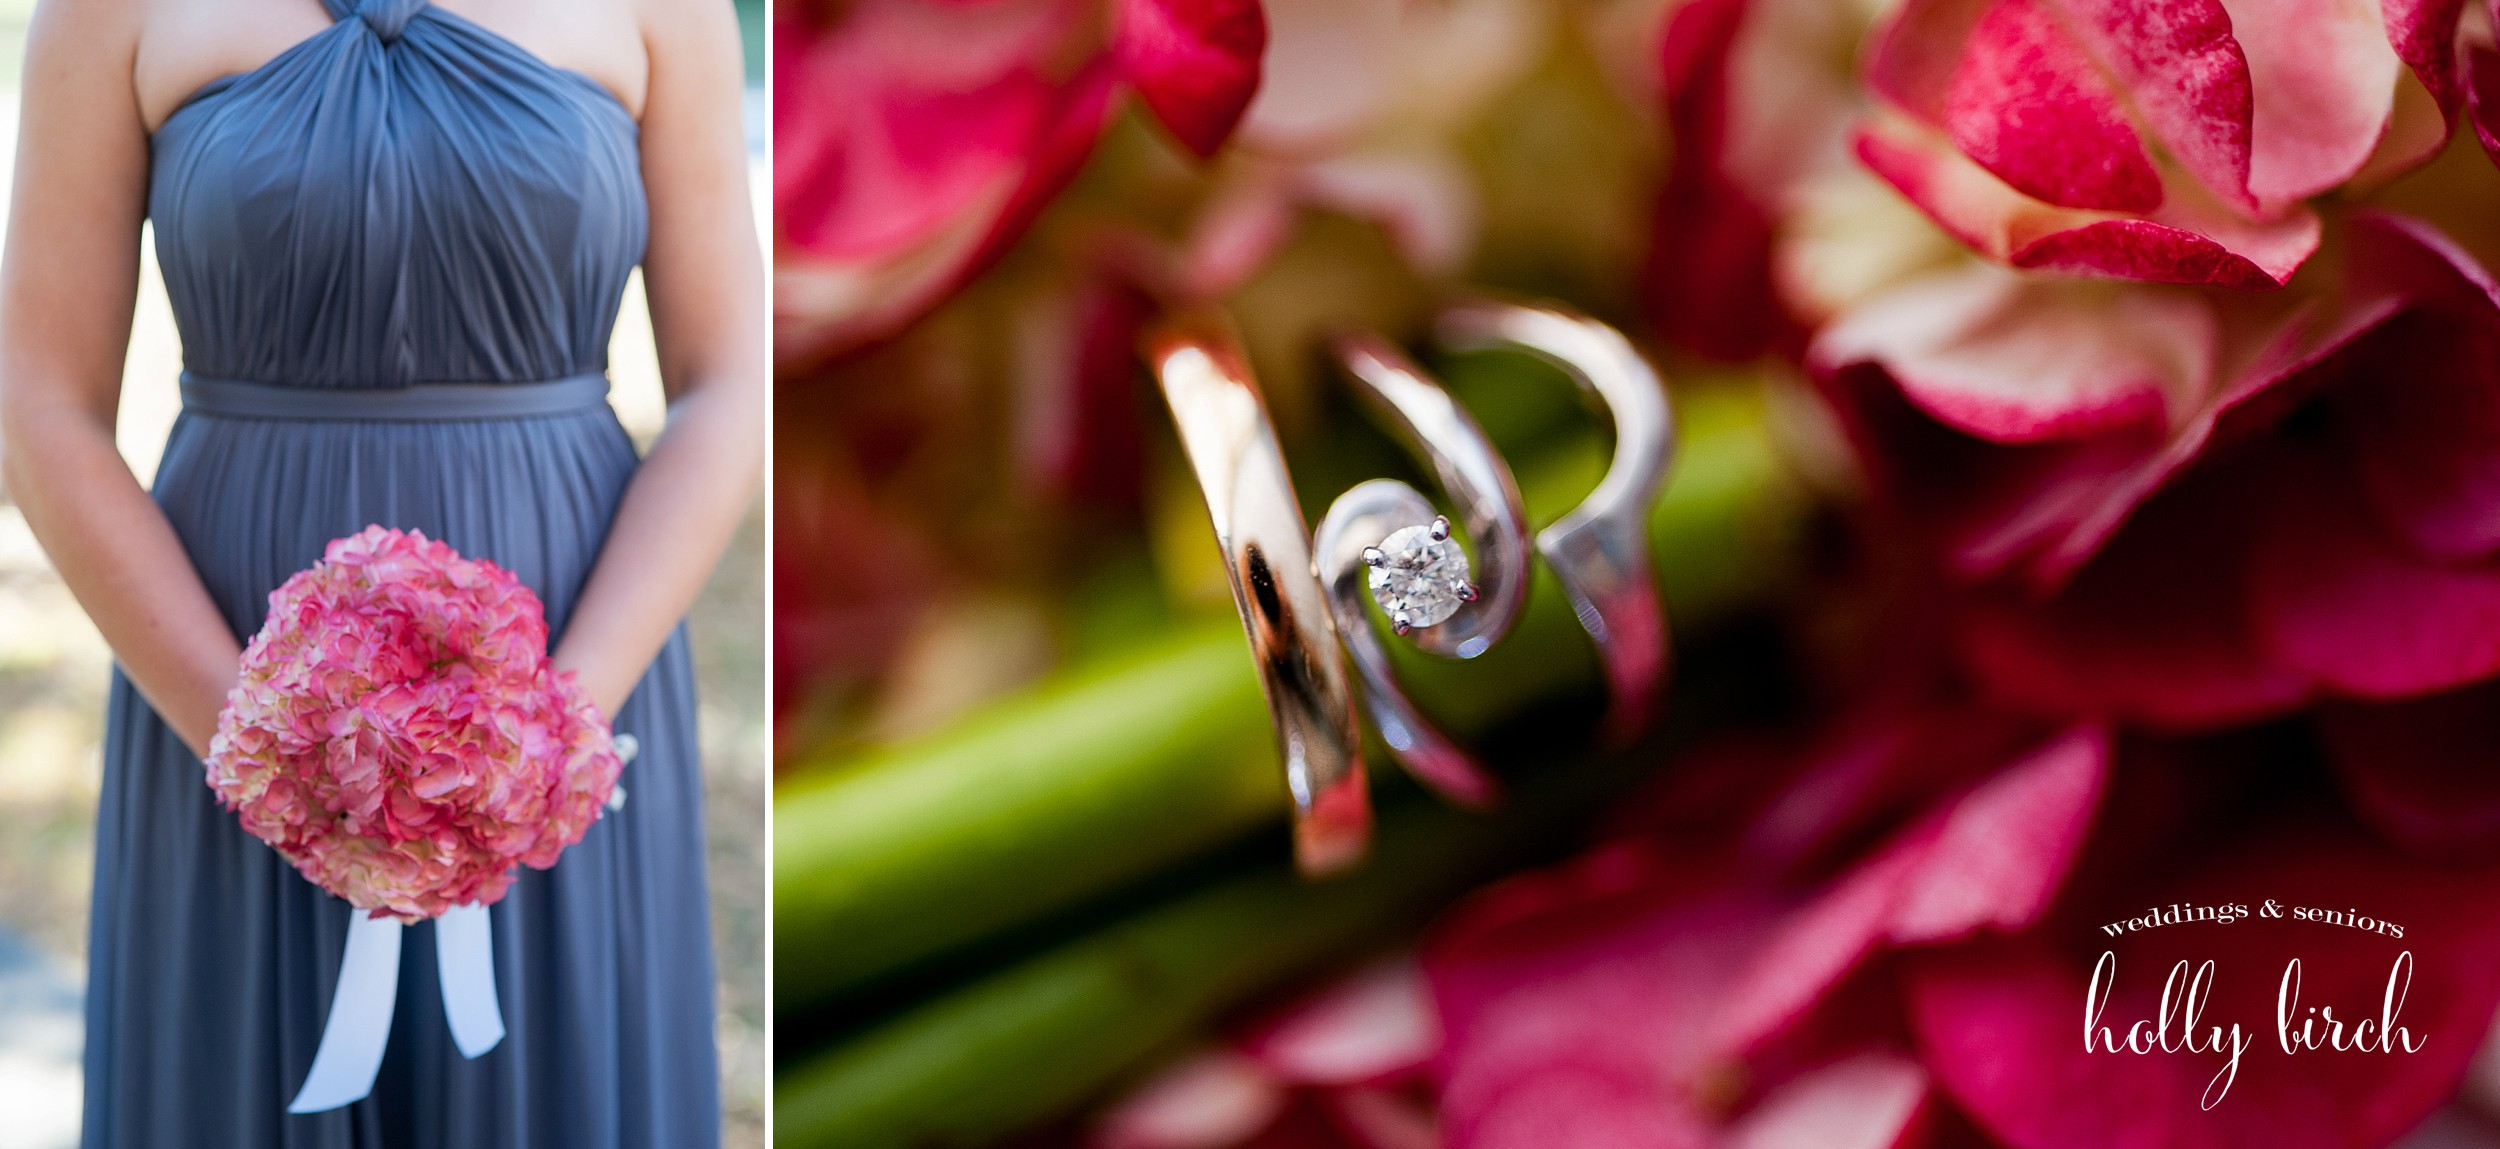 ring and bouquet details